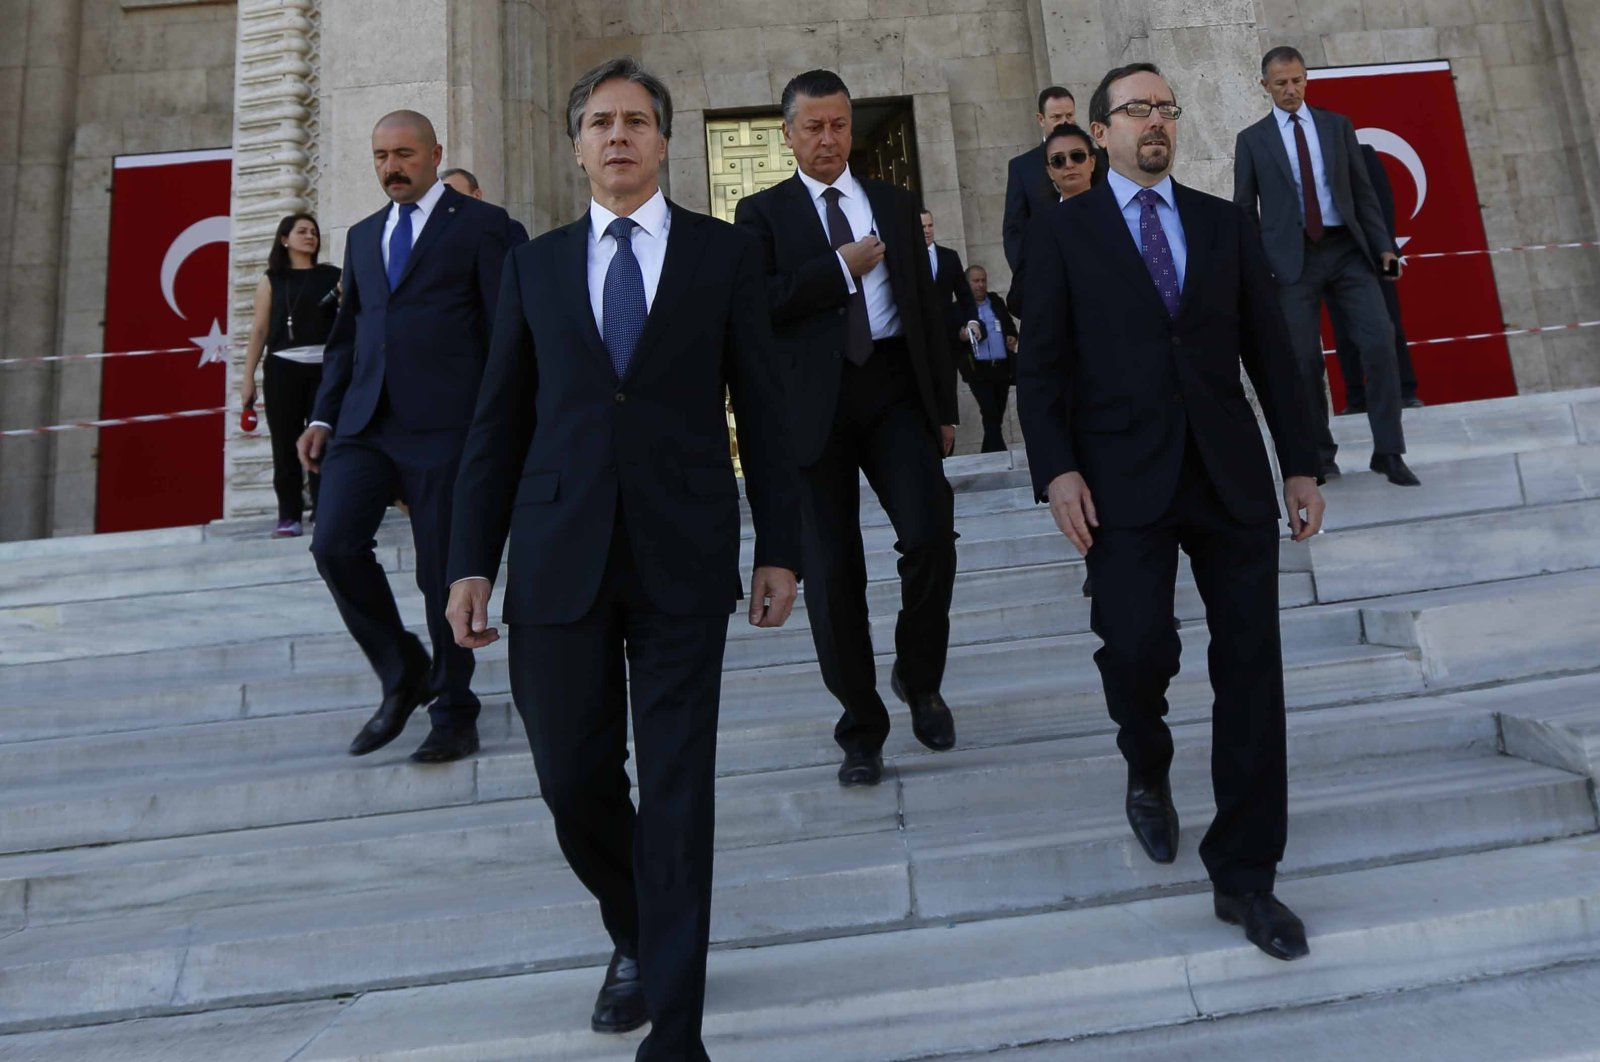 Then-U.S. Deputy Secretary of State Antony Blinken (Center L), accompanied by then-U.S. Ambassador to Ankara John Bass (R), leaves the Turkish Parliament after observing the damaged parts of the building due to the bombing of the Gülenist Terror Group (FETÖ) coup plotters on the night of the July 15 failed coup attempt, Ankara, Turkey, Sept. 27, 2016. (Photo by Ali Ekeyılmaz)